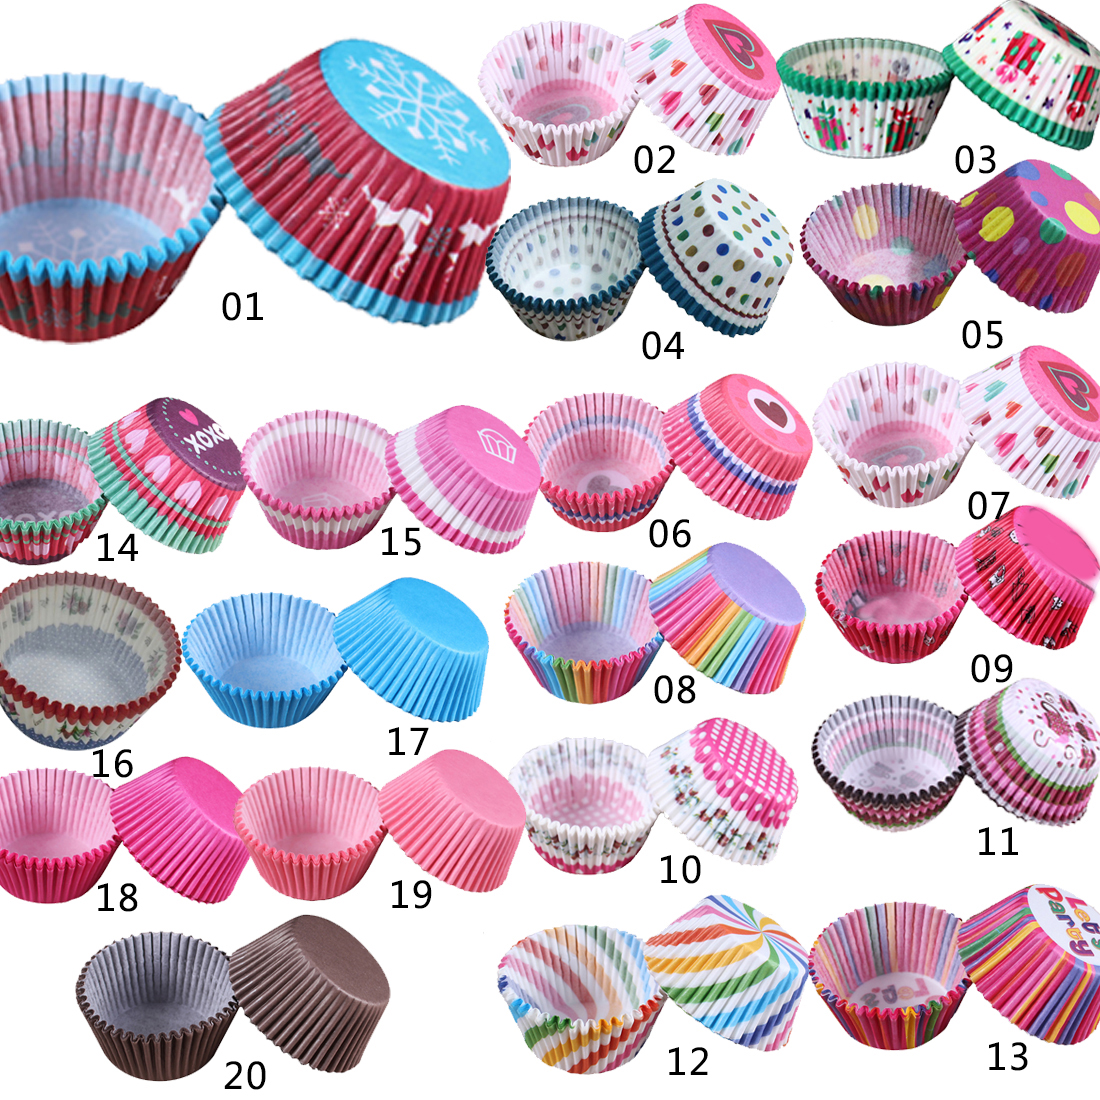 Great 100 Pcs/lot Cooking Tools Grease-proof Paper Cup Cake Liners Baking Cup Muffin Kitchen Cupcake Cases Cake Mold